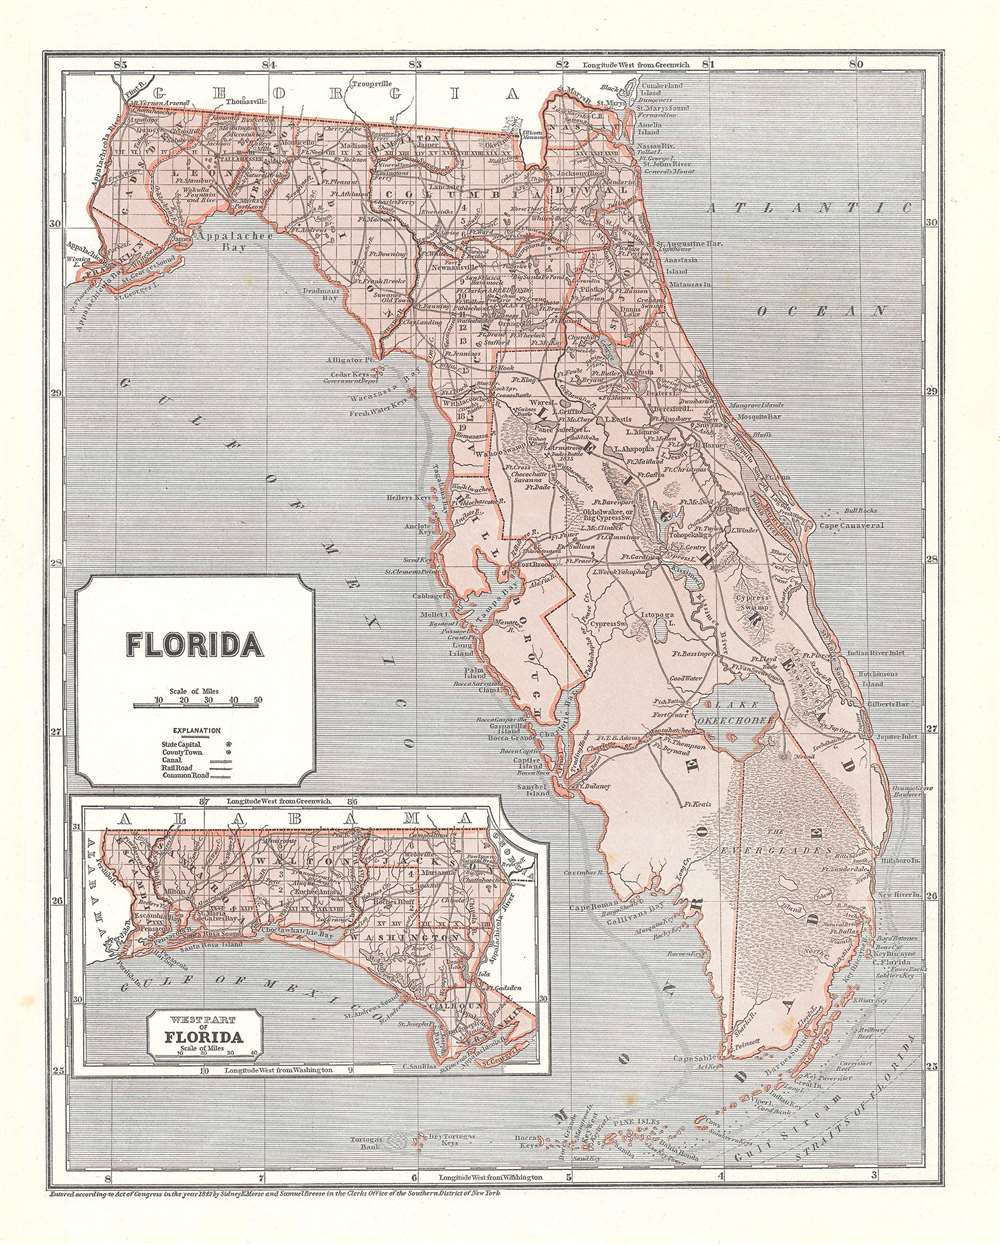 1845 Morse and Breese Map of Florida